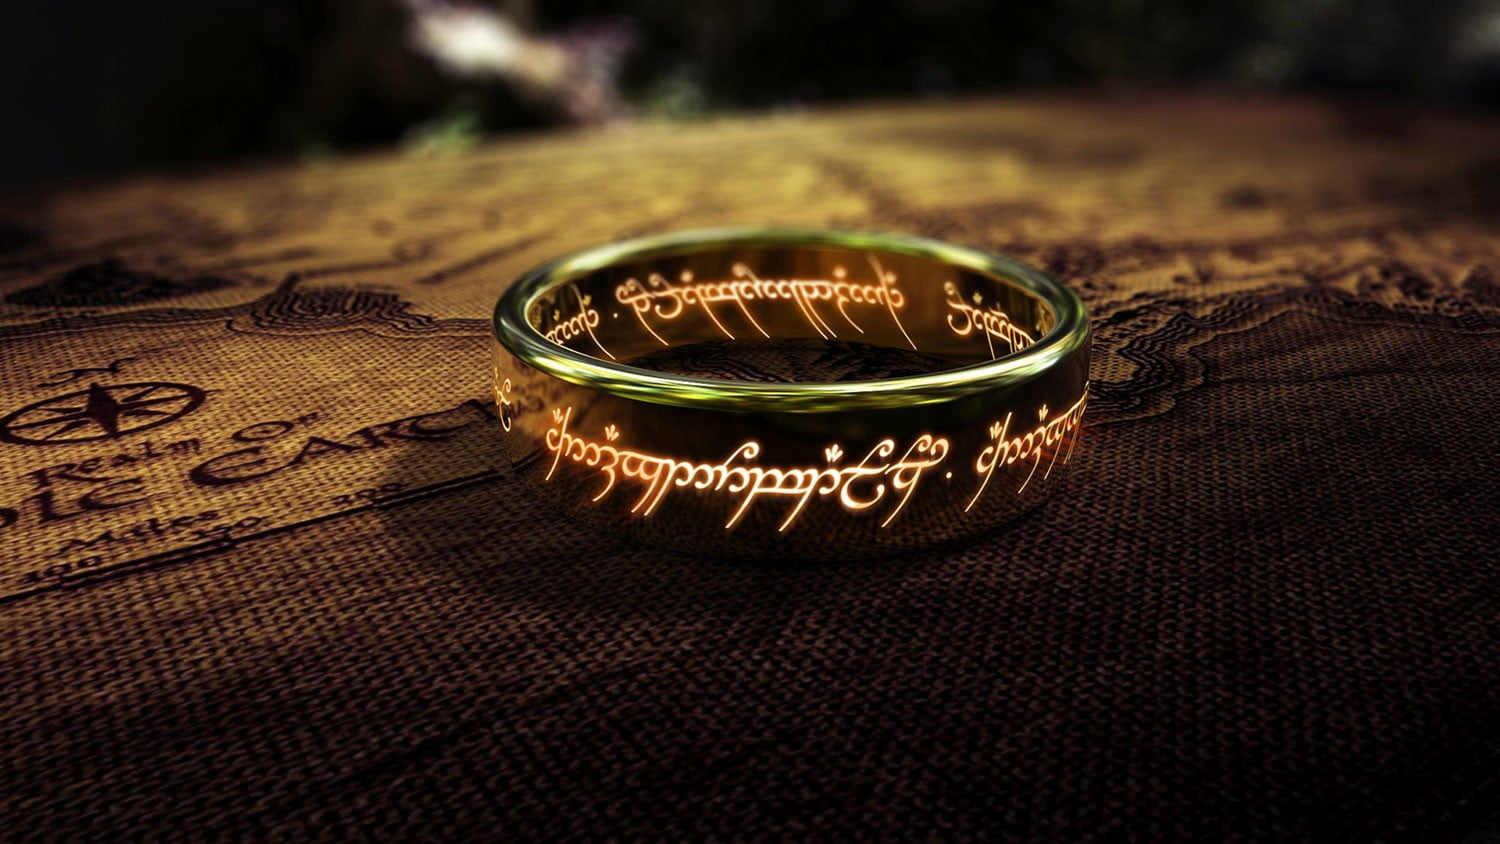 Amazon's Lord of the Rings Series: Everything We Know So Far ... on printable hobbit map, thorin's map, gondor map, winnie the pooh map, the hobbit map, lord foul's bane map, the one ring map, hunger games map, the wonderful wizard of oz map, a tale of two cities map, the way of kings map, rivendell map, mordor map, middle-earth map, elf lord of rings map, lord of the flies map, lord rings battle return king, bilbo's map, lord of rings map shire, lonely mountain map,